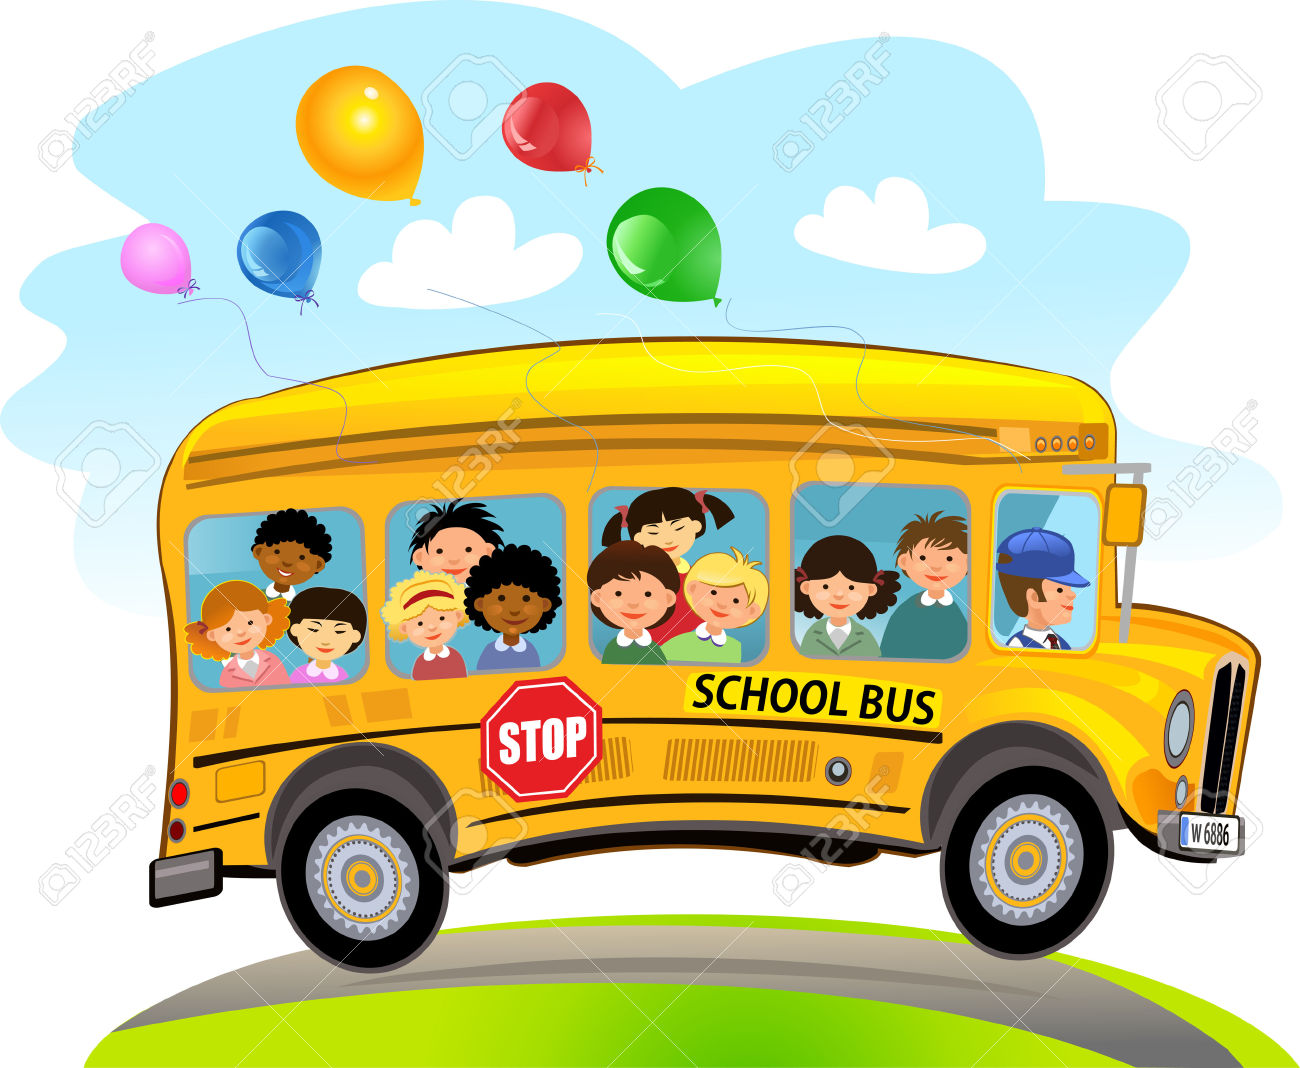 School bus clipart red lips clip art download Buses Clipart | Free download best Buses Clipart on ... clip art download